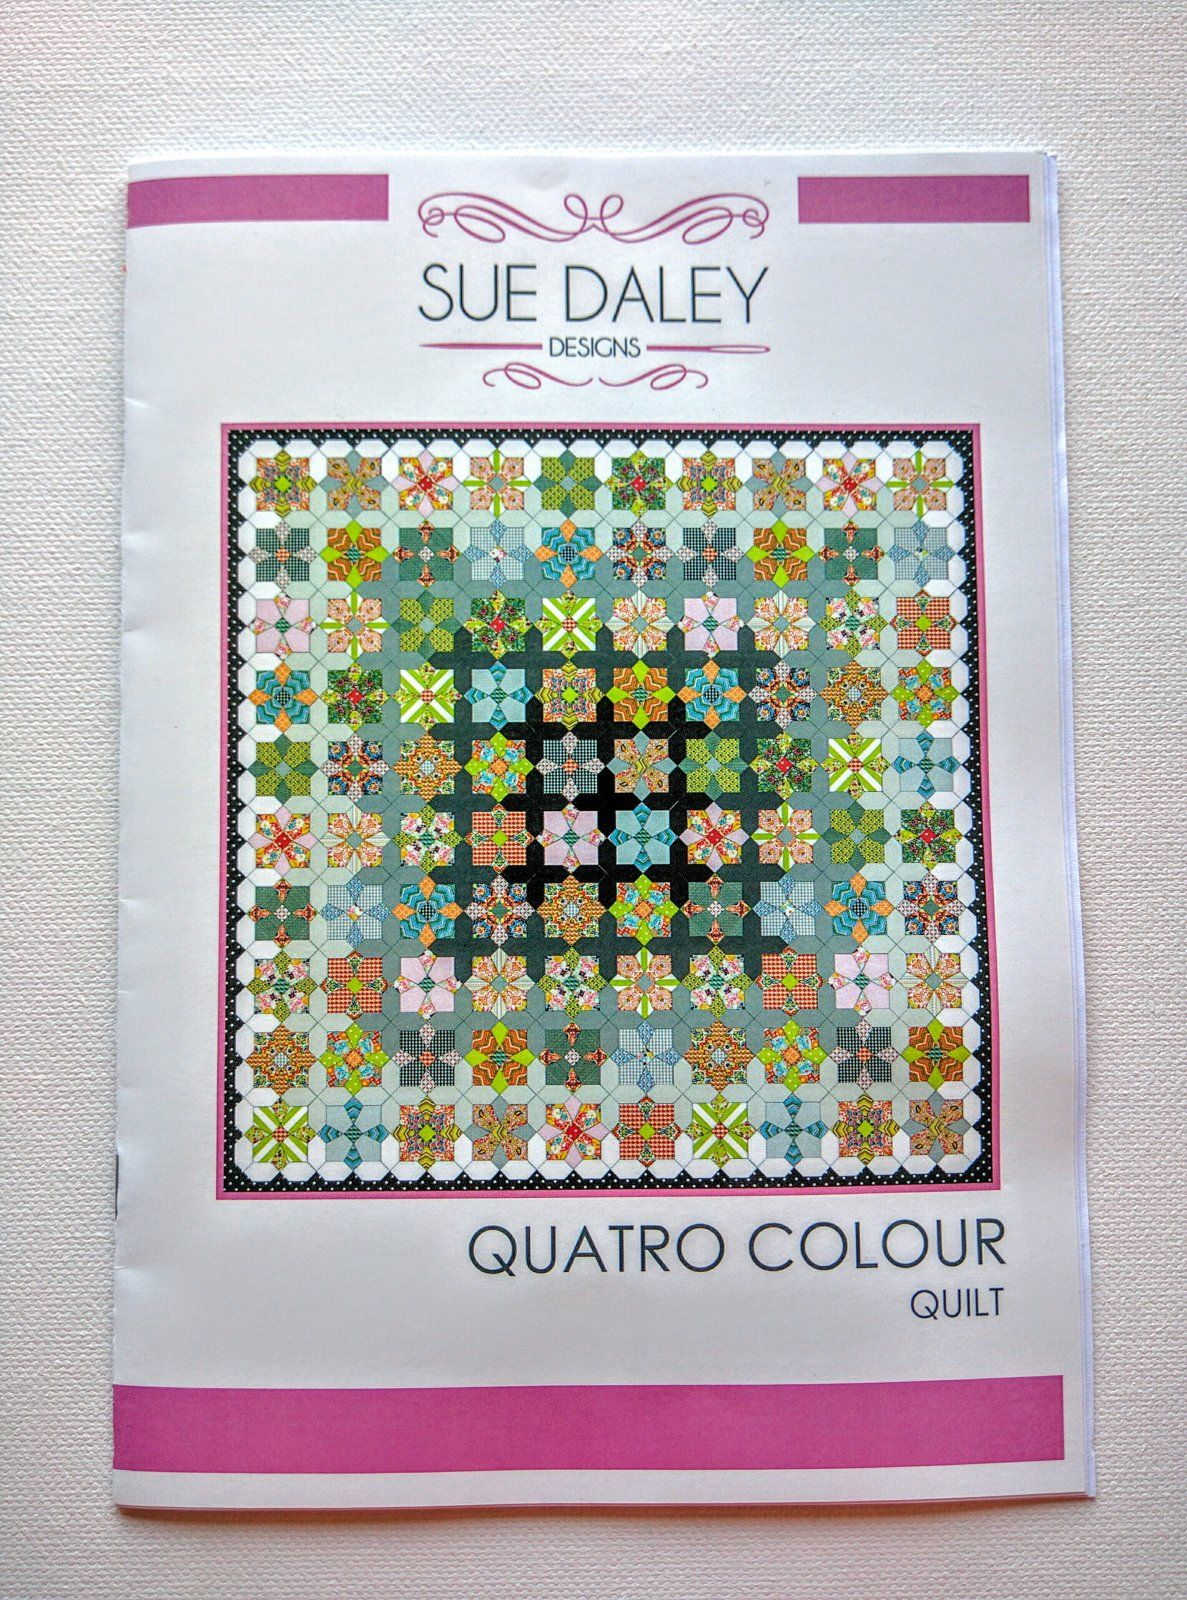 Quatro Colour Quilt- Sue Daley Designs- English Paper Piecing Kit ... : english quilt patterns - Adamdwight.com